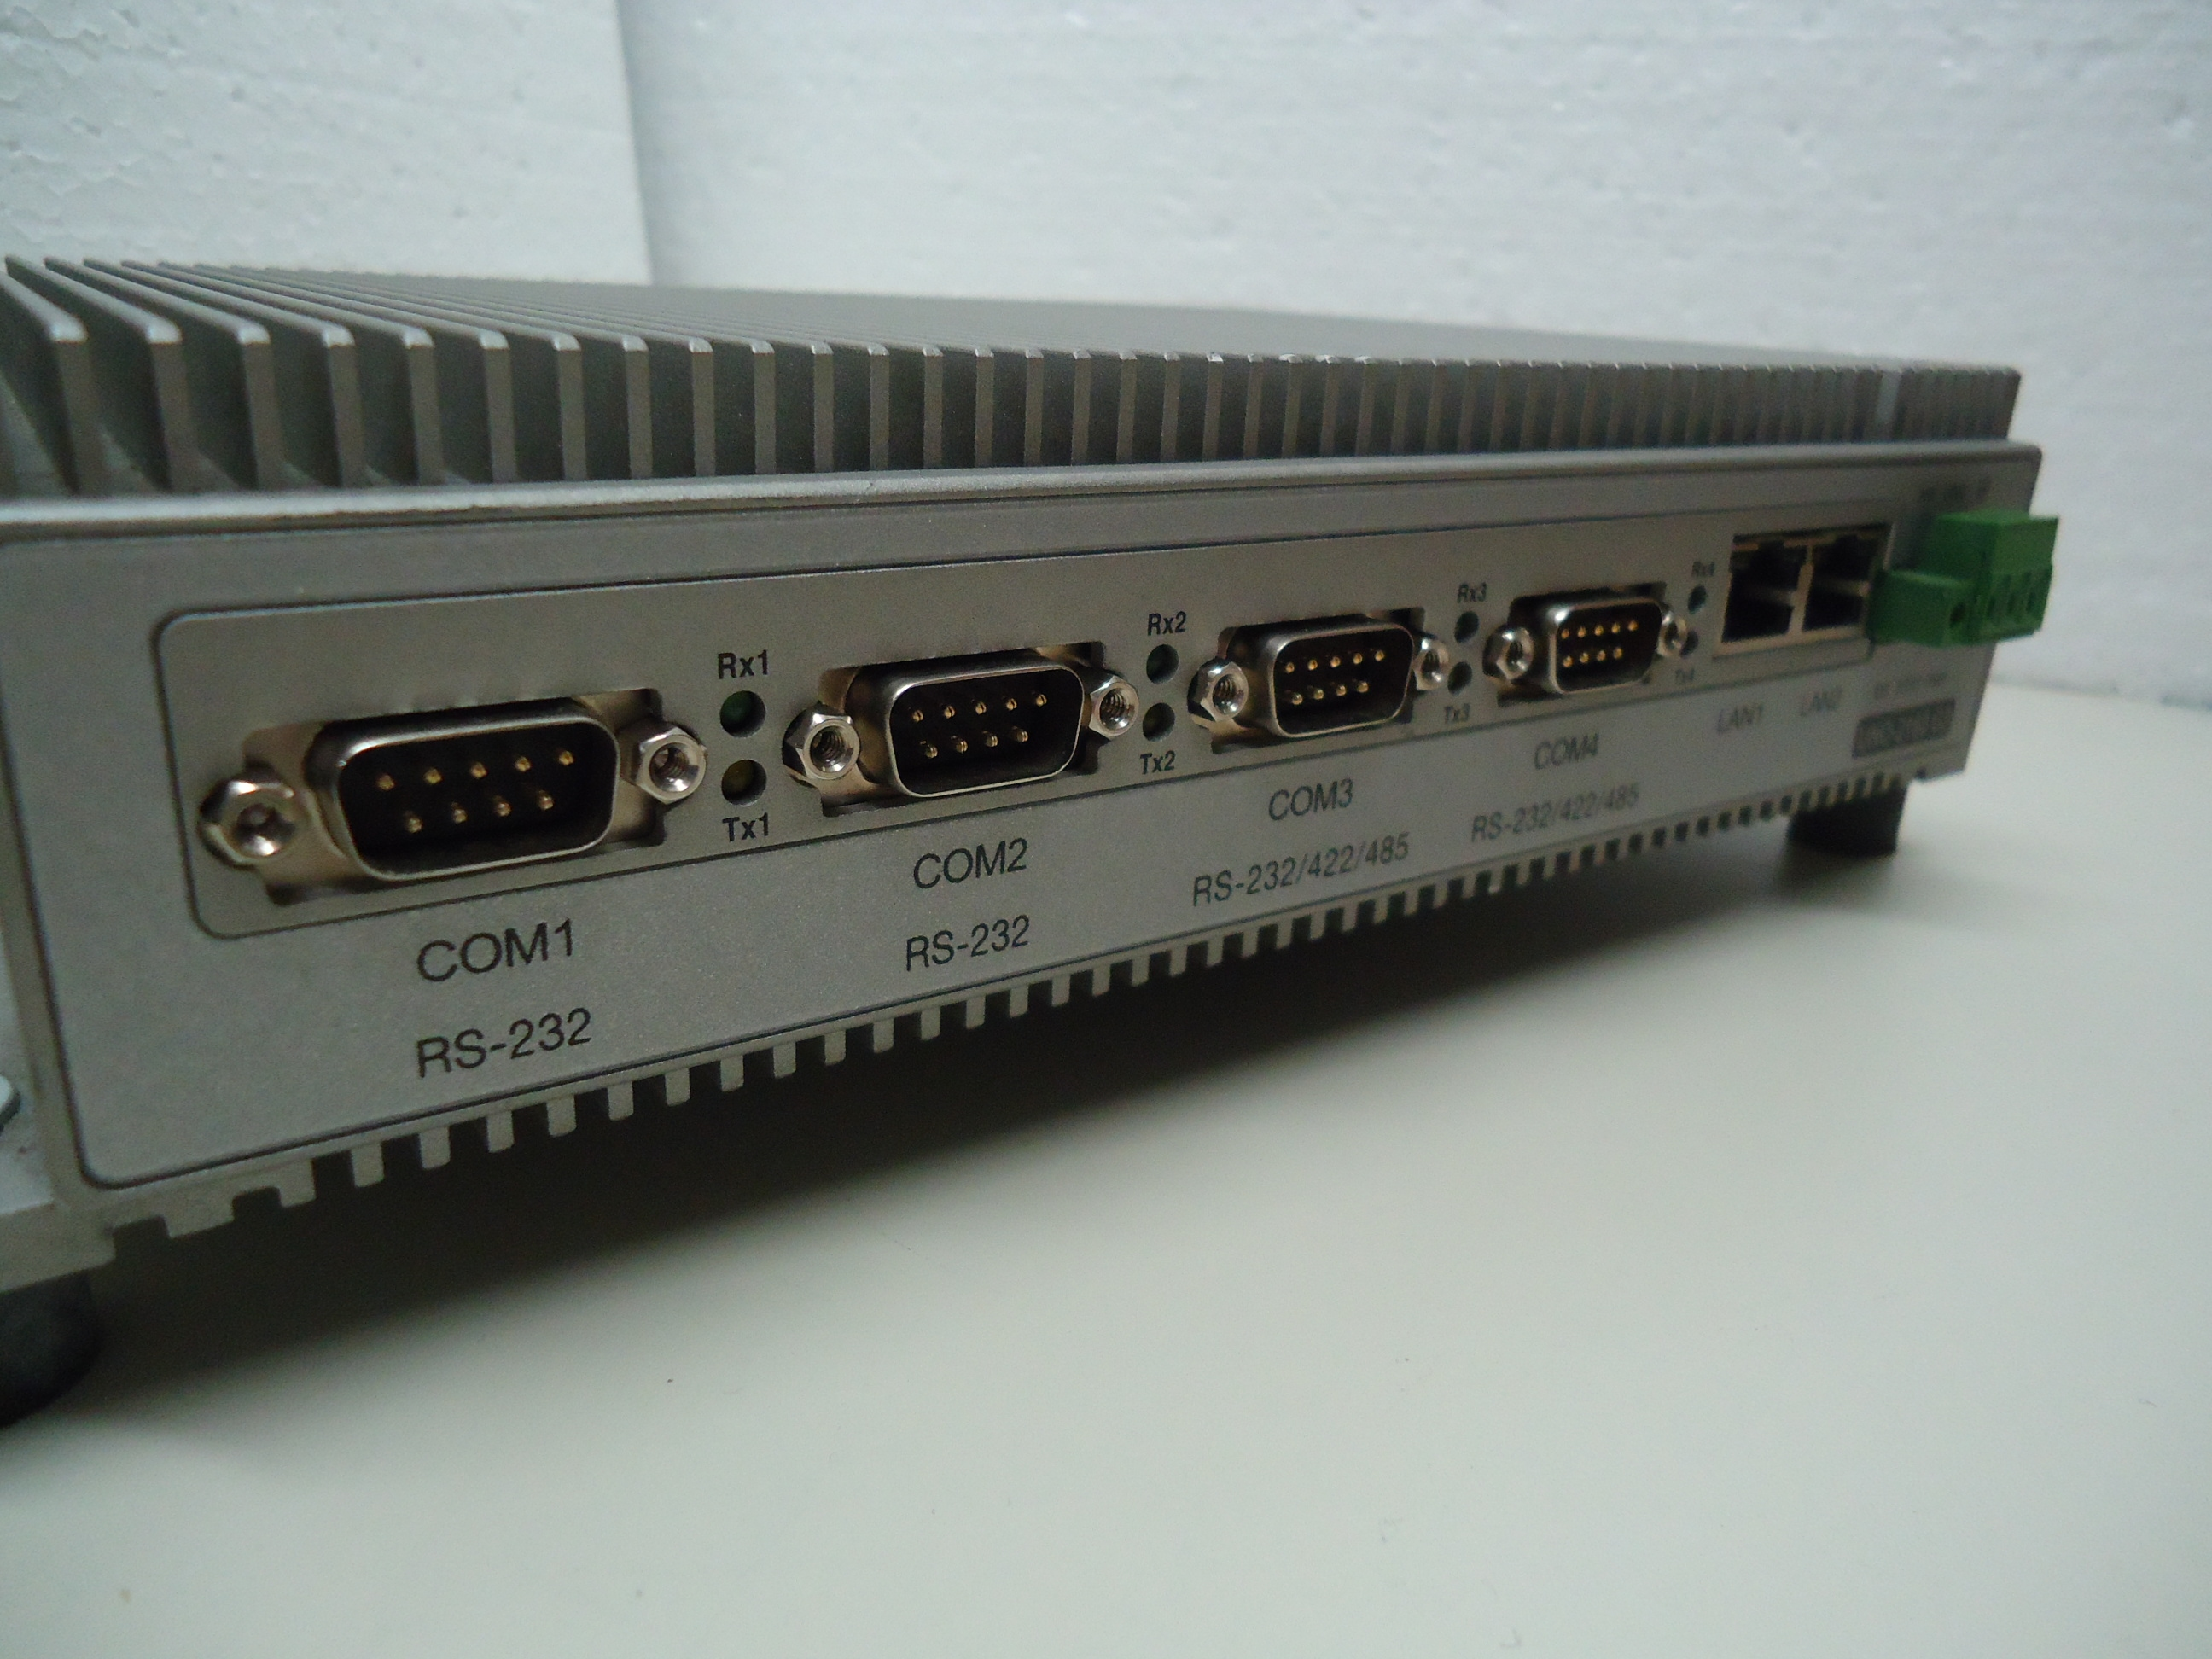 UNO-2160-G3E advantech pc